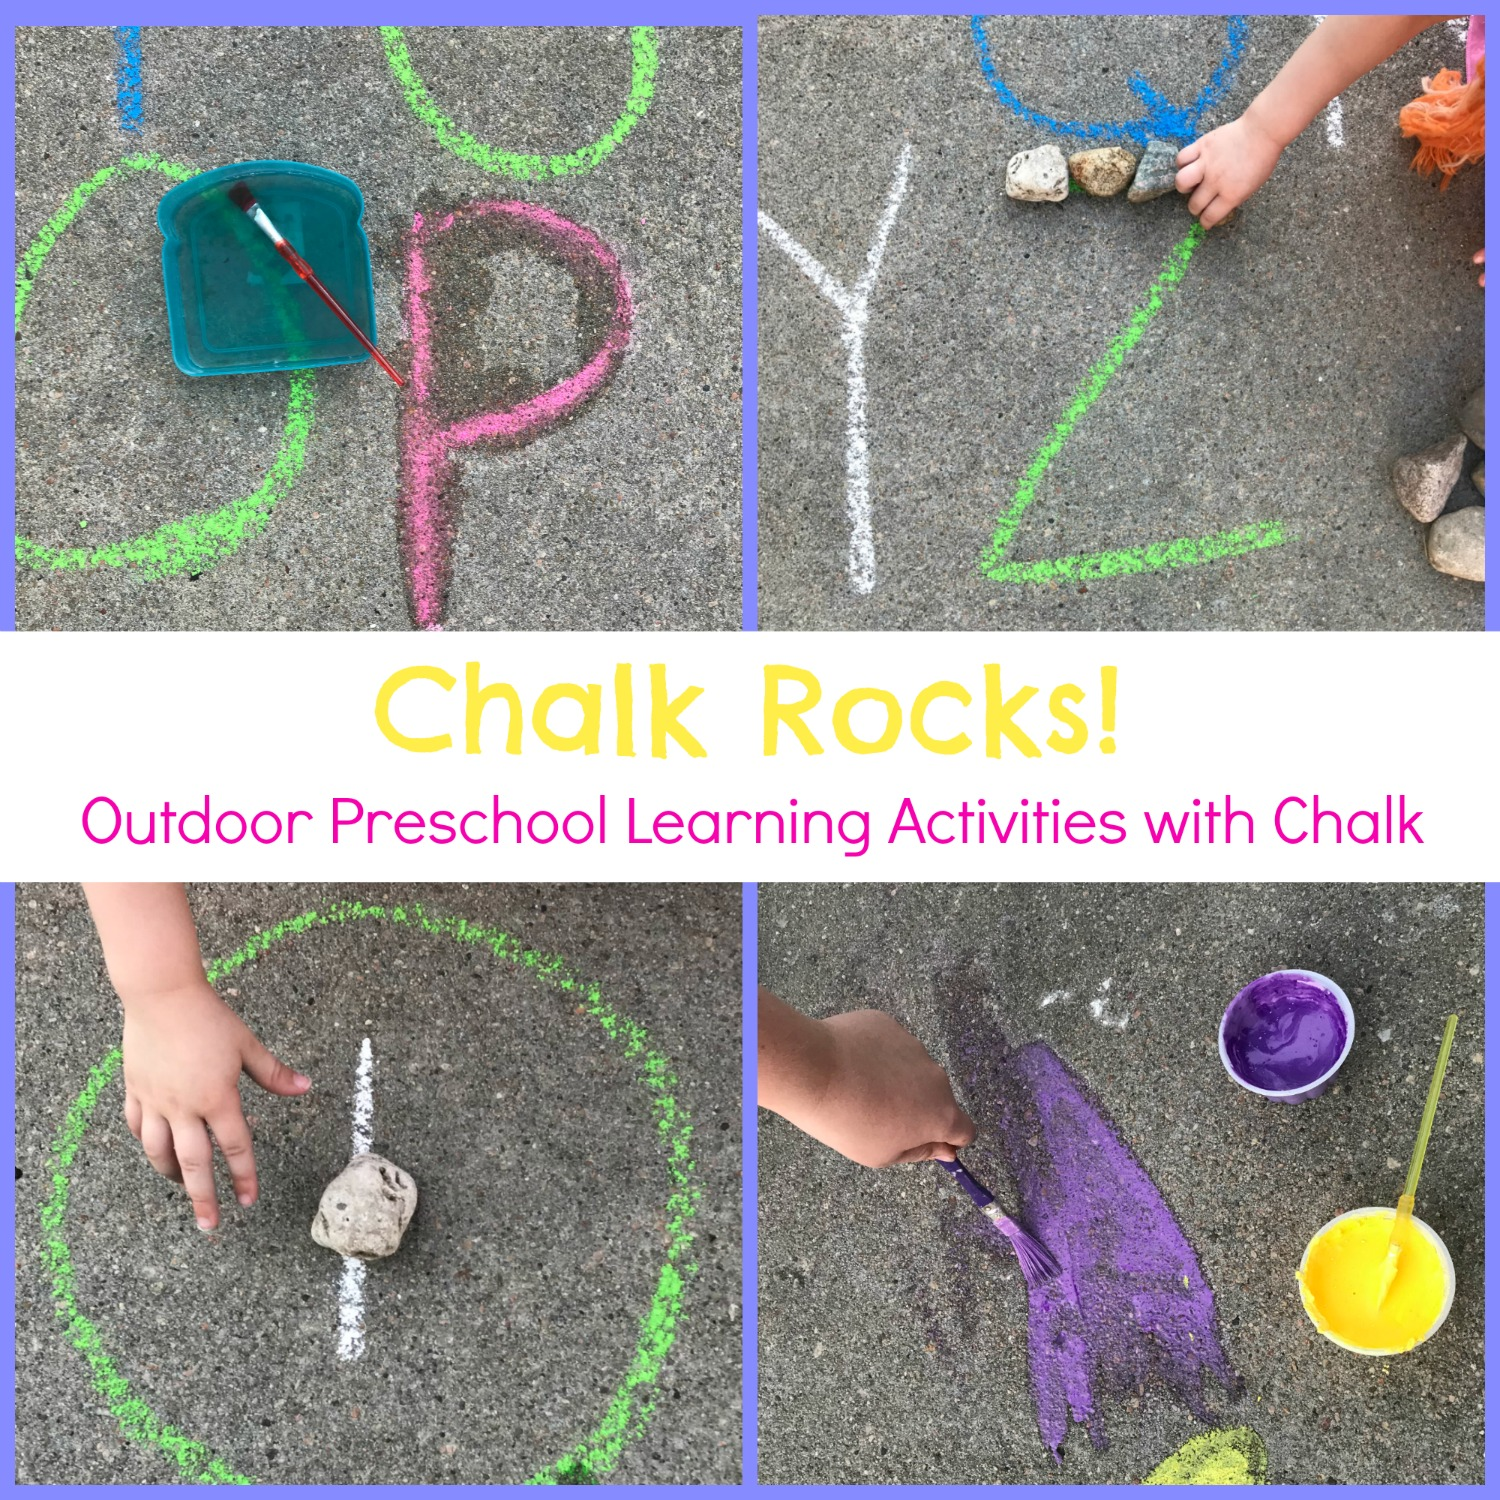 Chalk and Rock Activities for Preschool